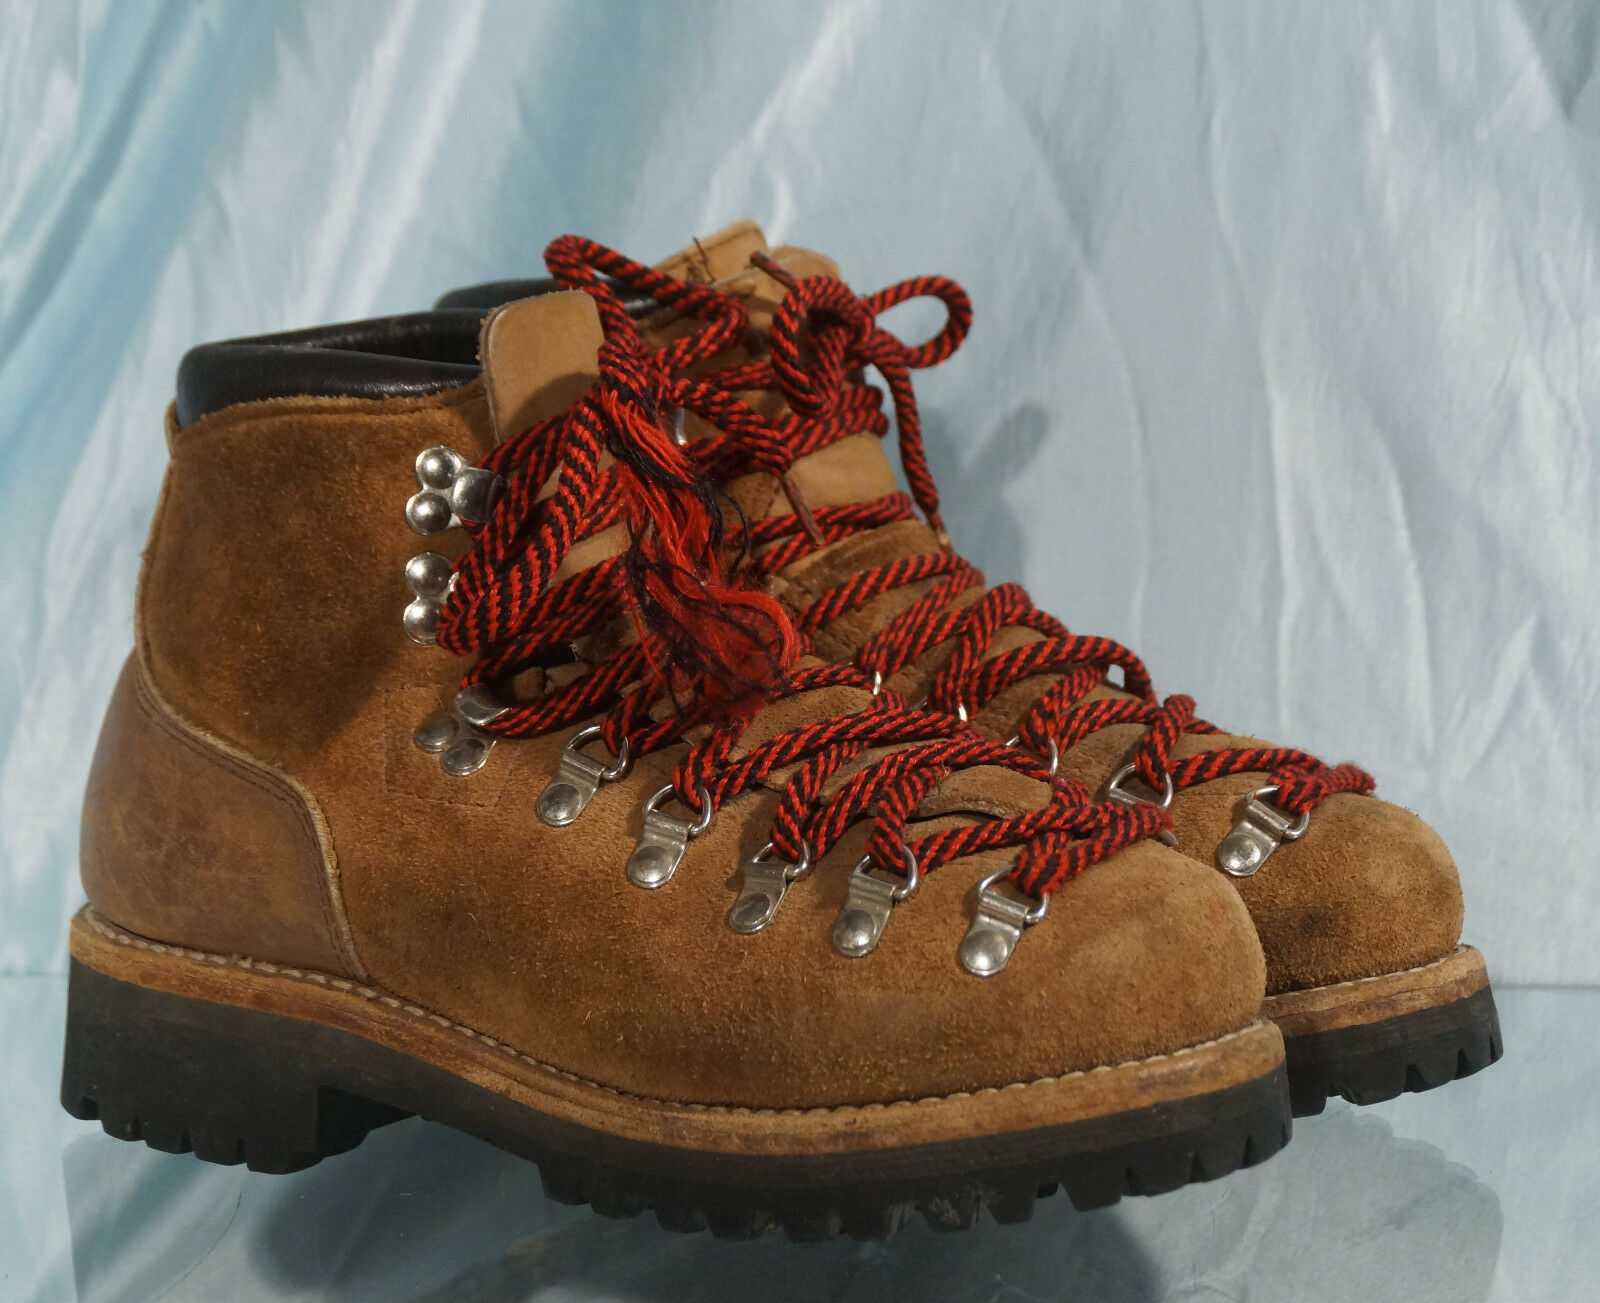 Rustic Vintage Beige US Made Unbranded Hiking Hiking Hiking Mountaineering Stiefel Sz 5.5M 98ac1a